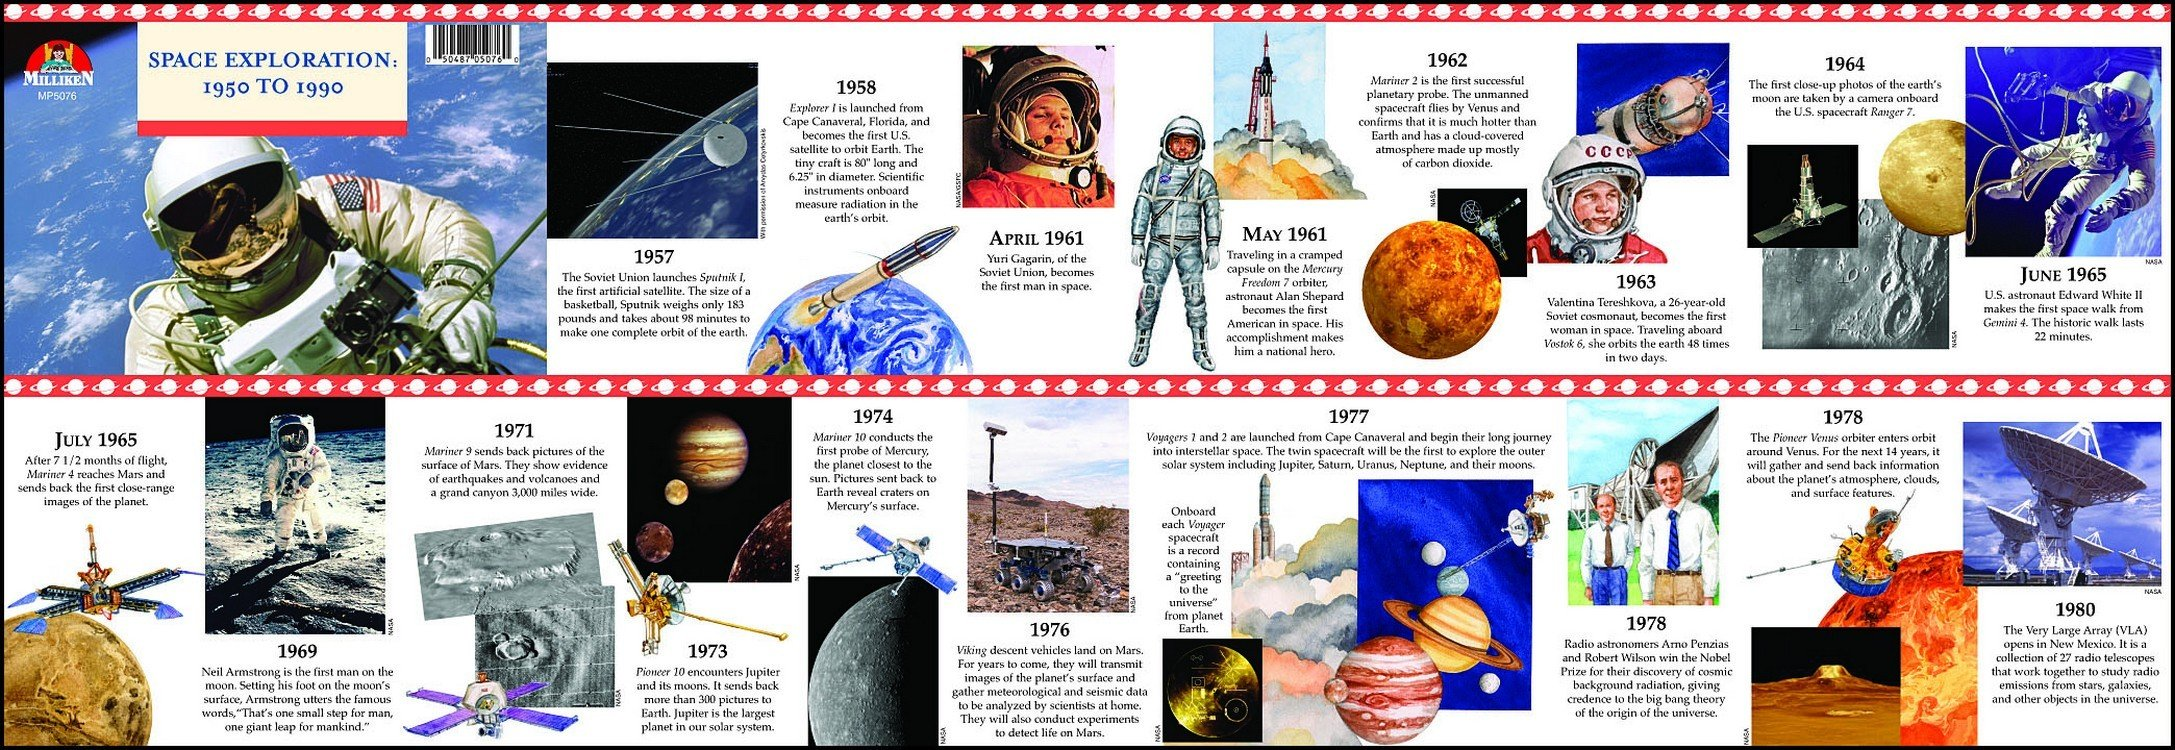 a report on space exploration